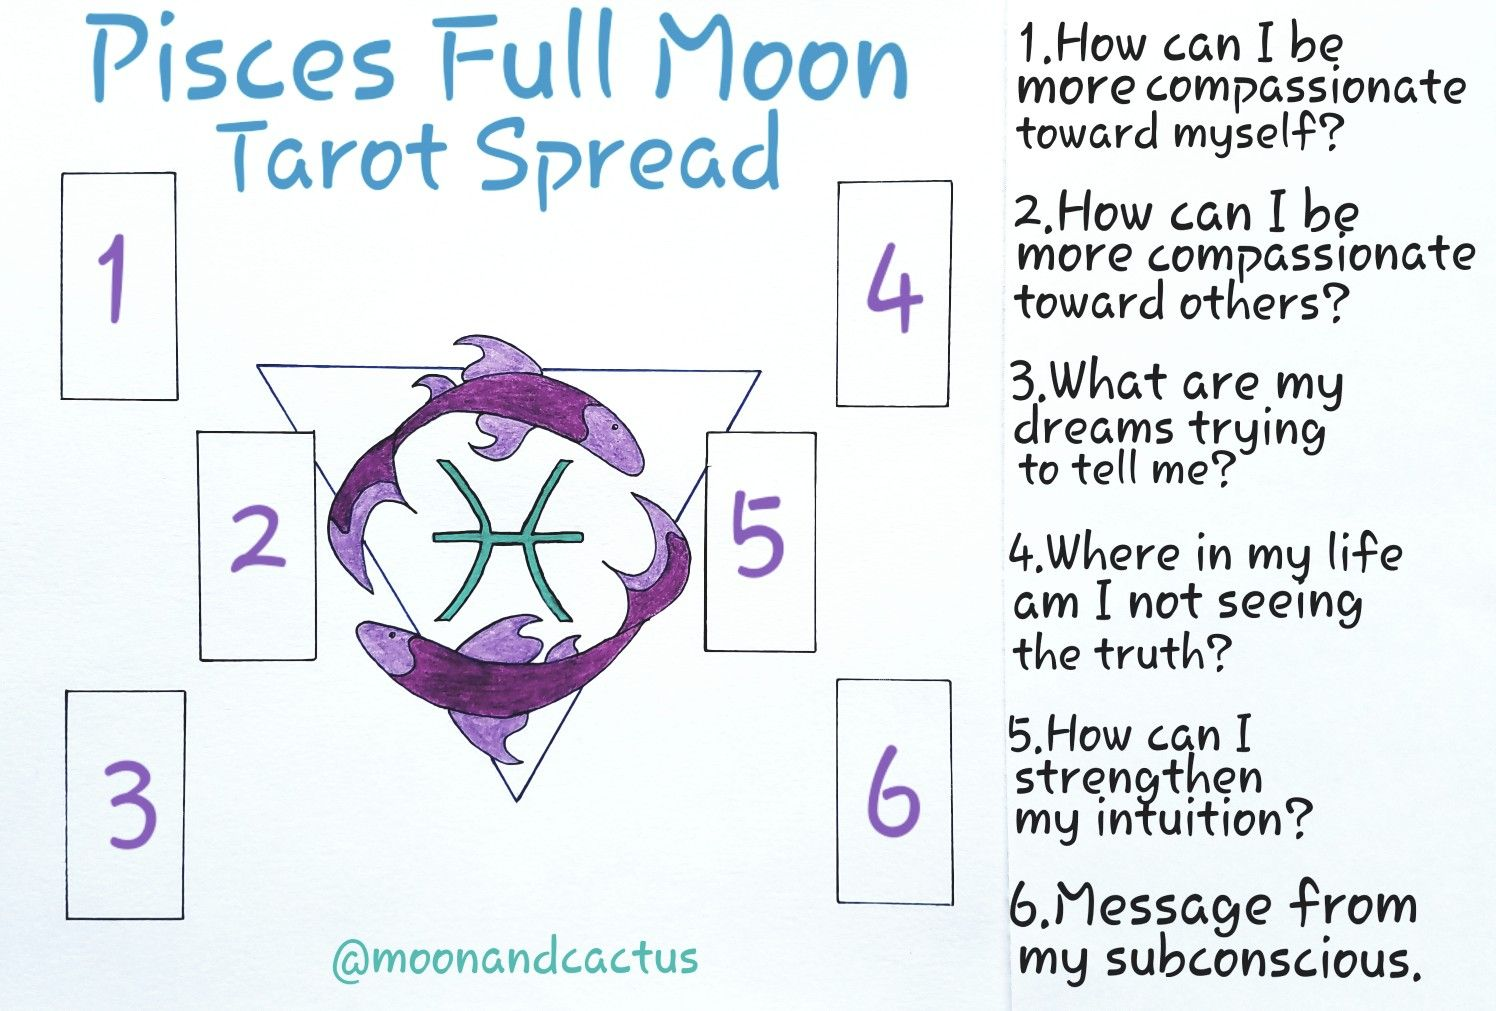 Full Moon in Pisces Spread. Created by @moonandcactus #fullmoontarotspread